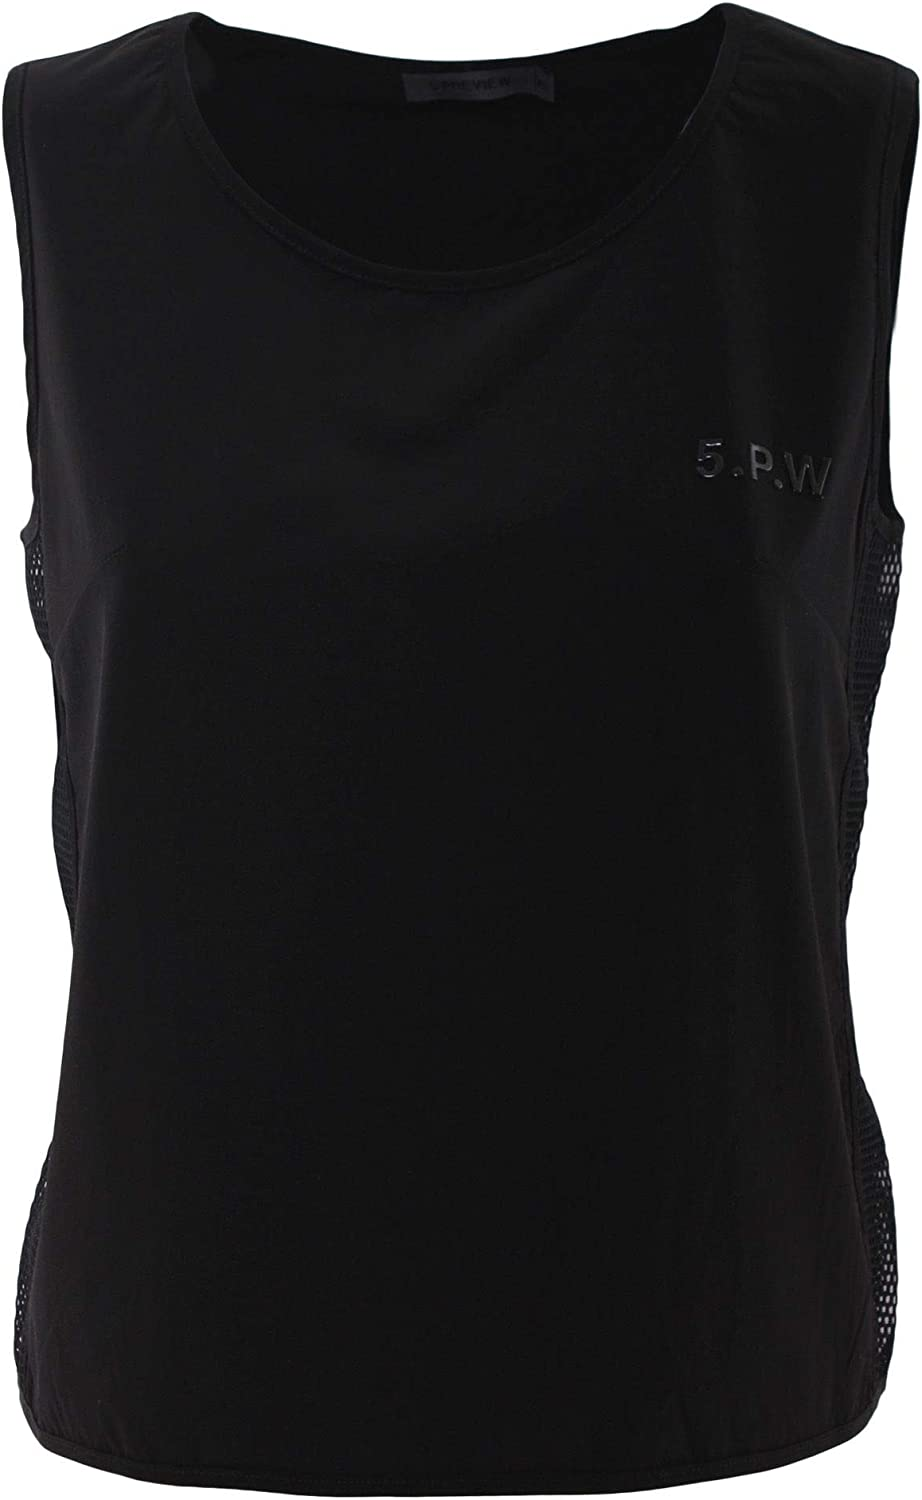 Five Preview Women's 011Q105900 Black Polyester Top